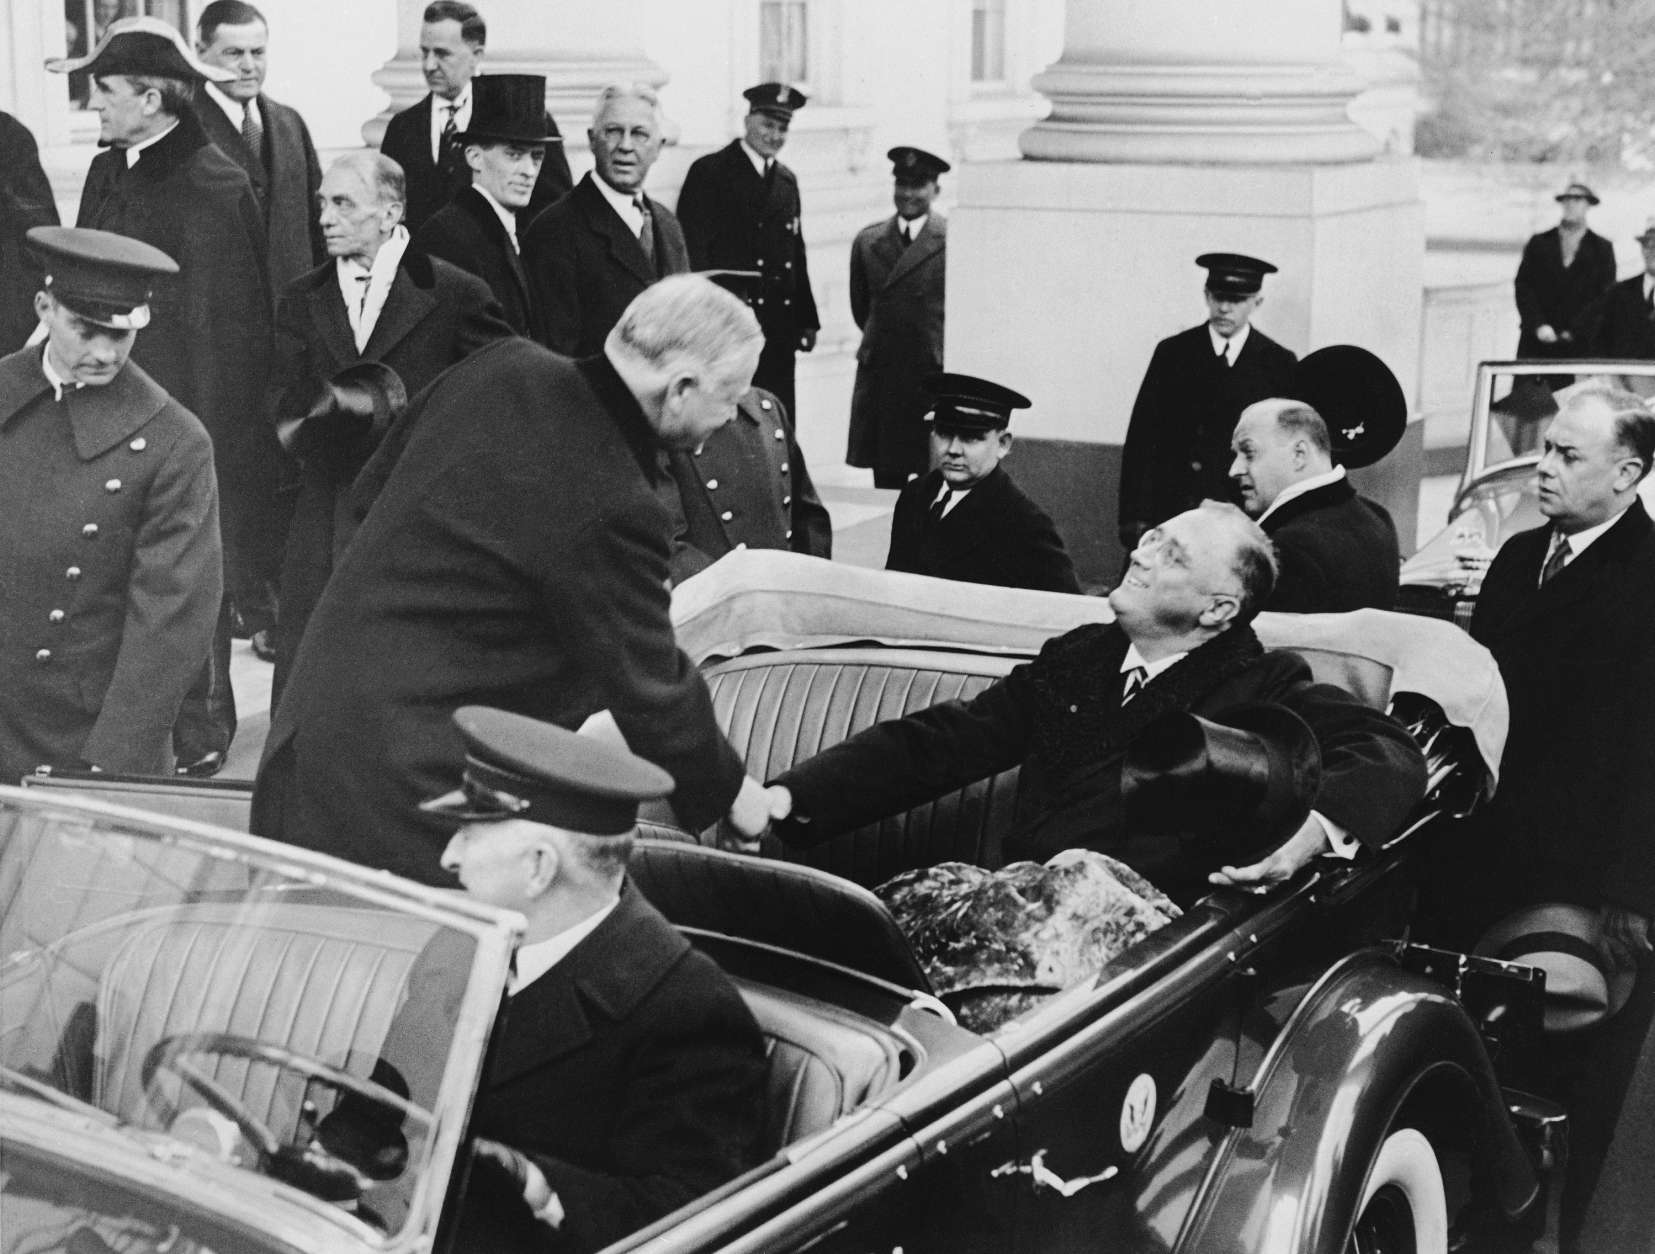 President-elect Franklin D. Roosevelt greets current Pres. Herbert Hoover warmly as the latter steps into the Roosevelt car at the White House for the trip to the Capitol and the inaugural ceremonies in Washington, March 4, 1933.  (AP Photo)